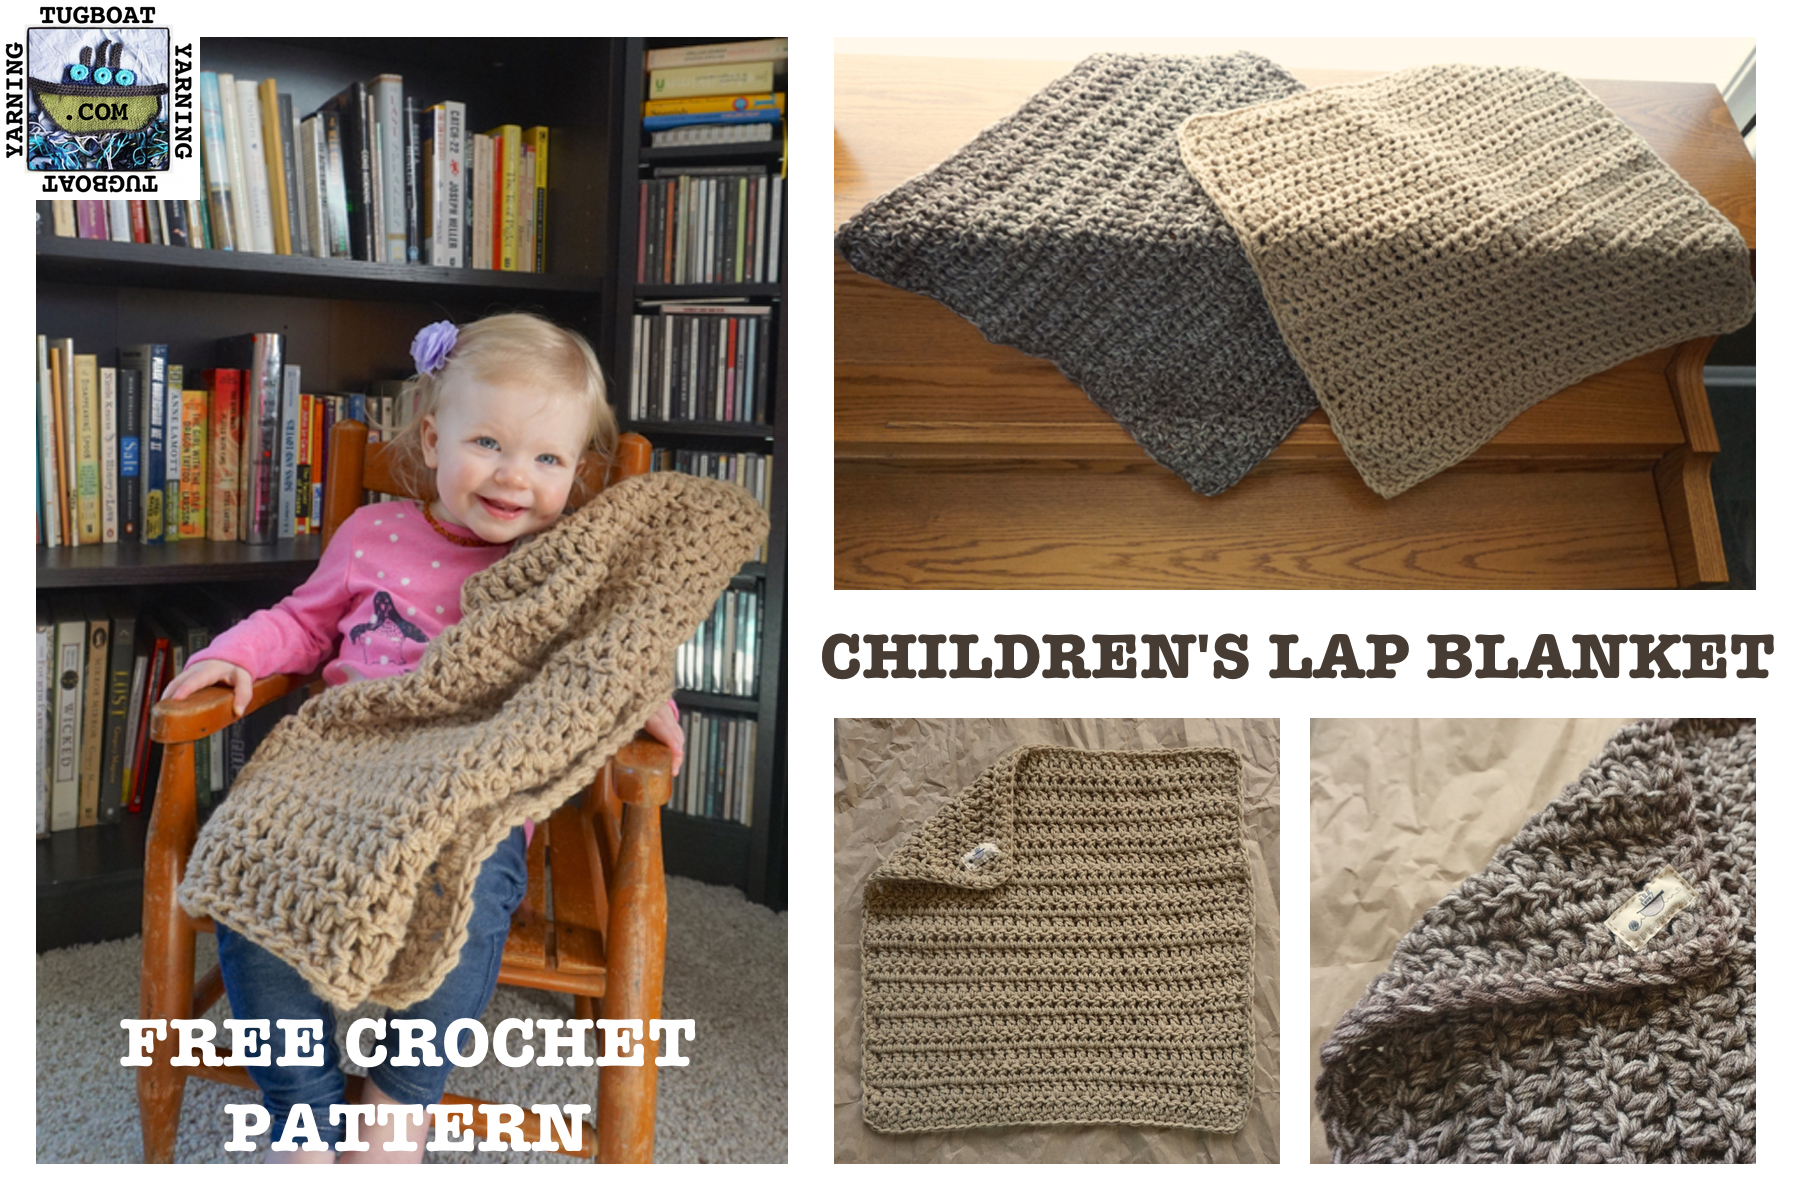 Children's Lap Blanket: Free Crochet Pattern